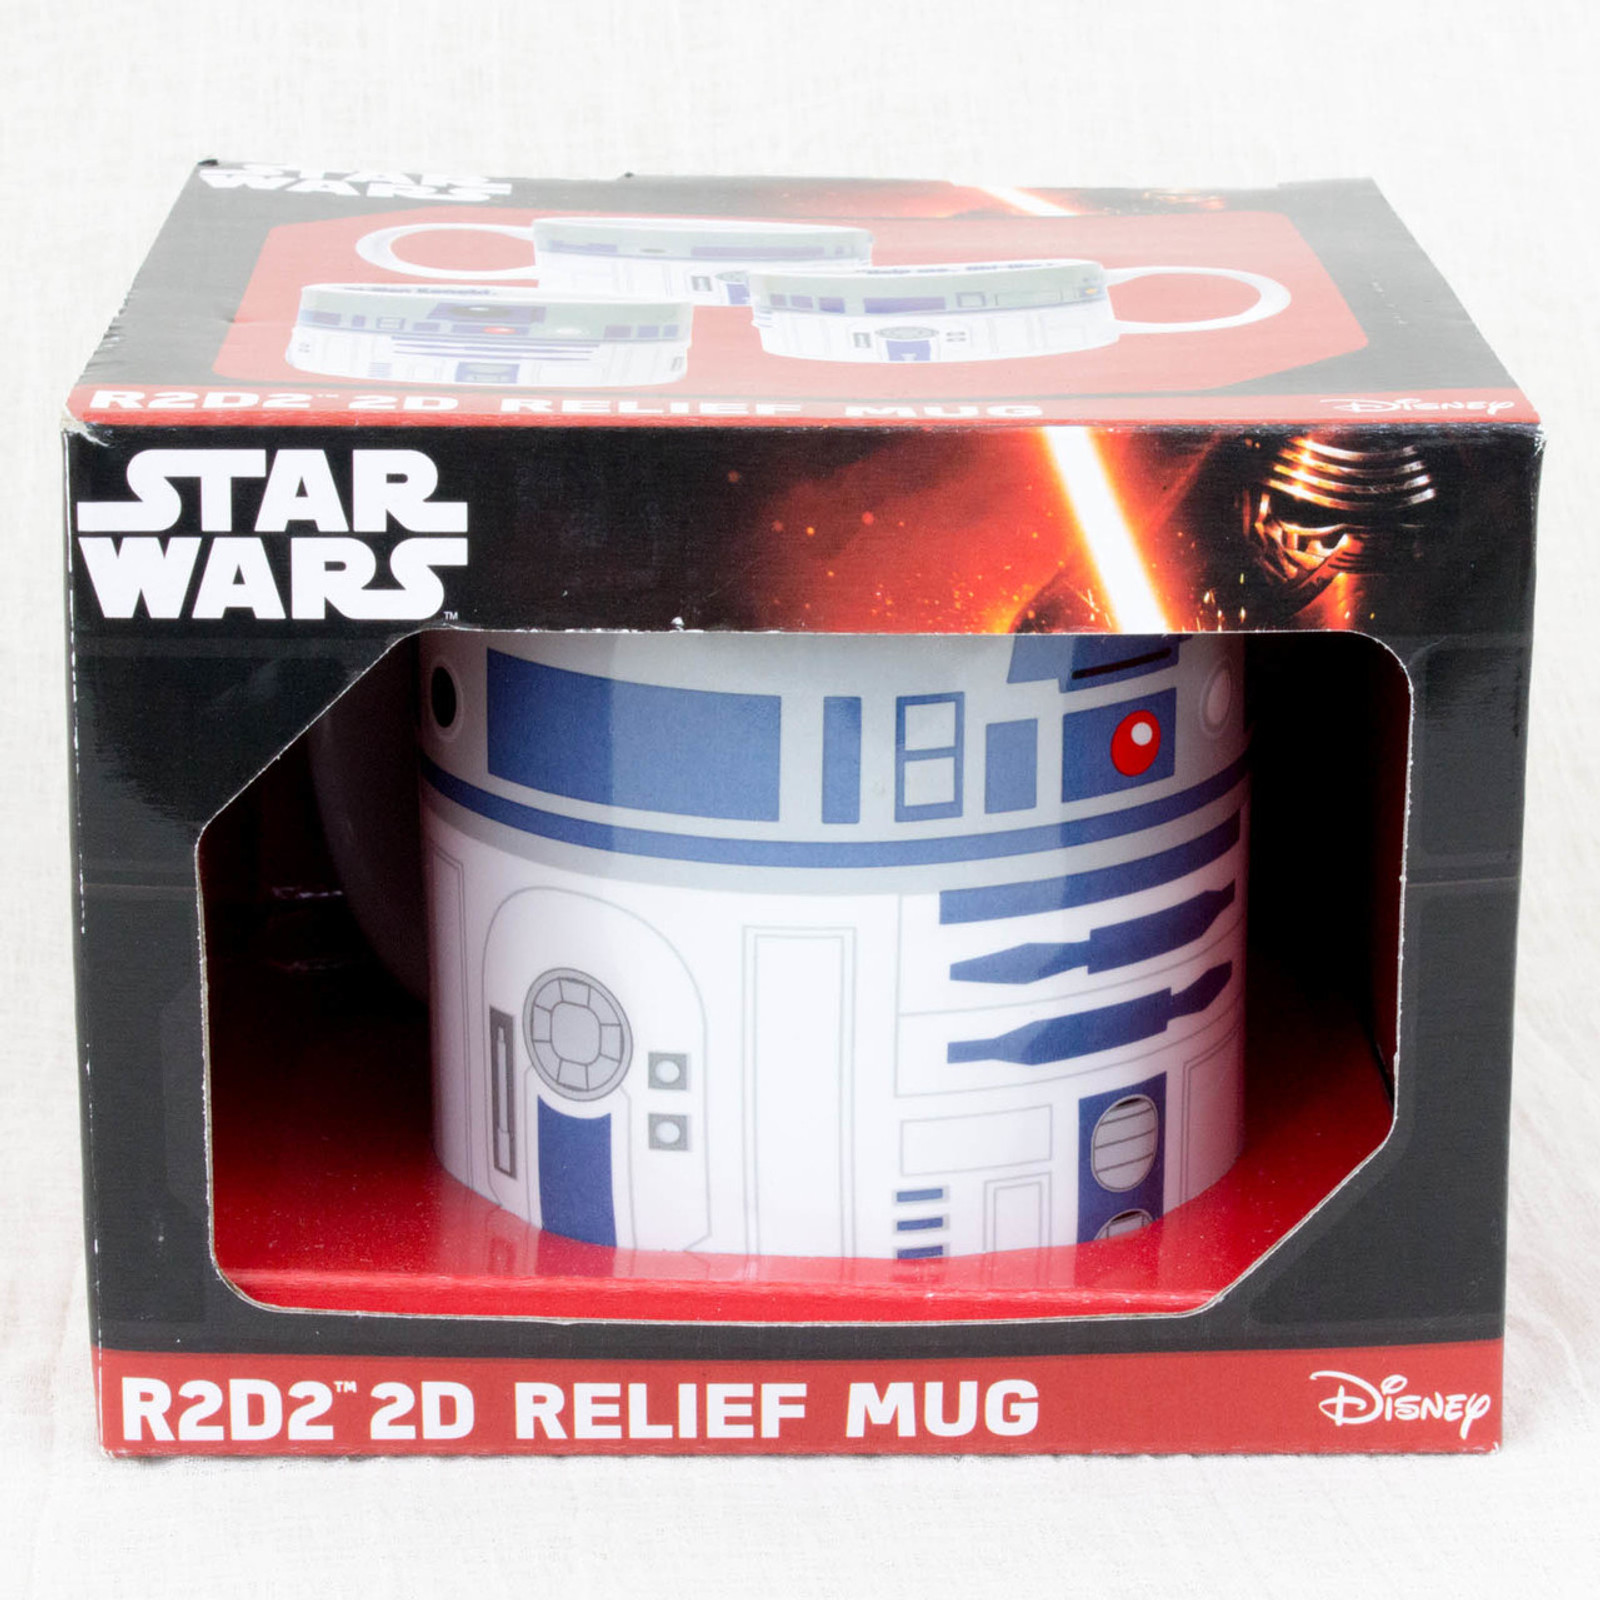 STAR WARS R2-D2 Ceramic 2D Relief Mug Hot Toys ZEON MOVIE SF